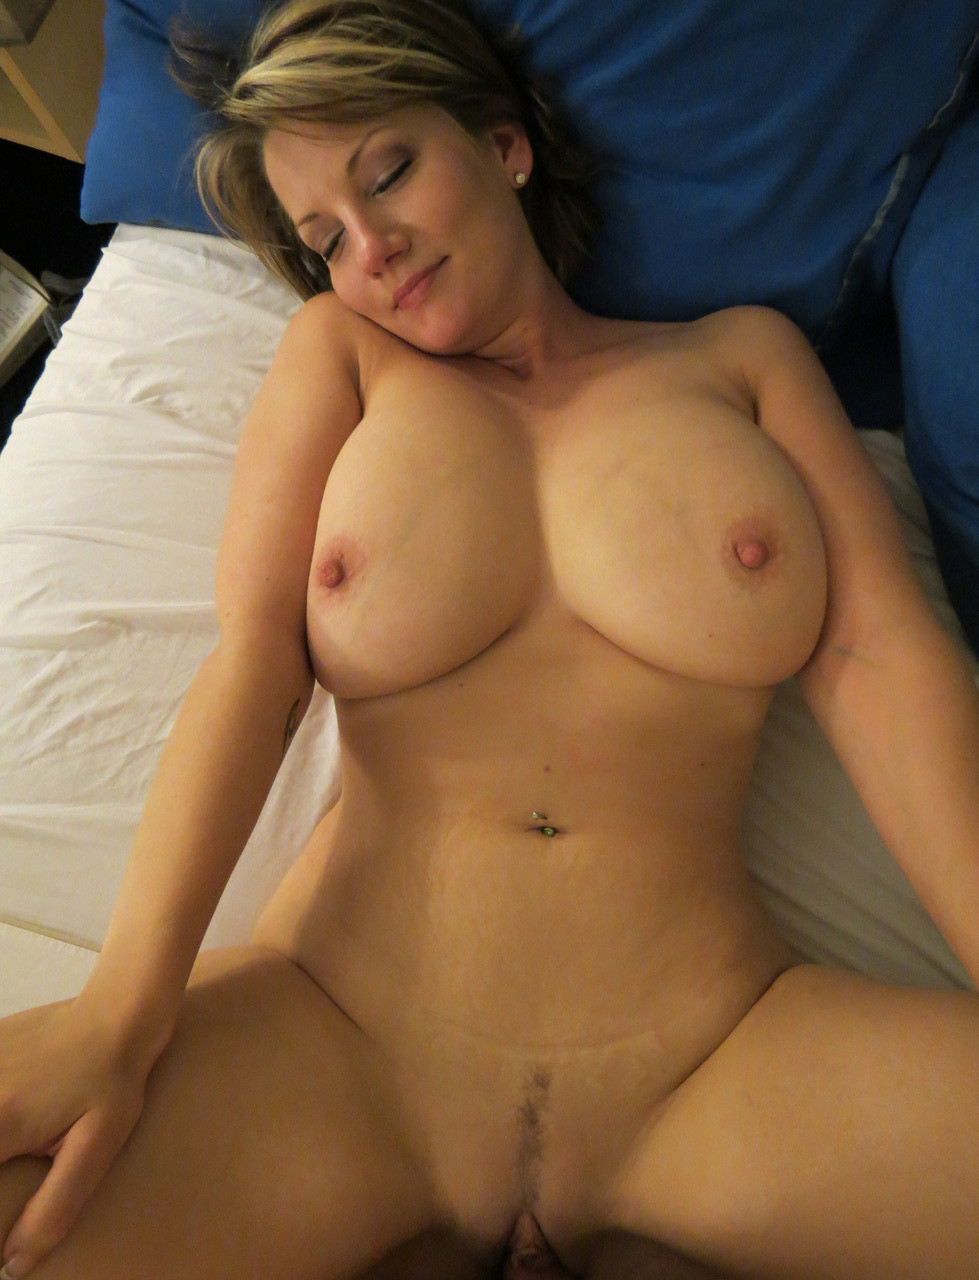 Amateur porn video wife